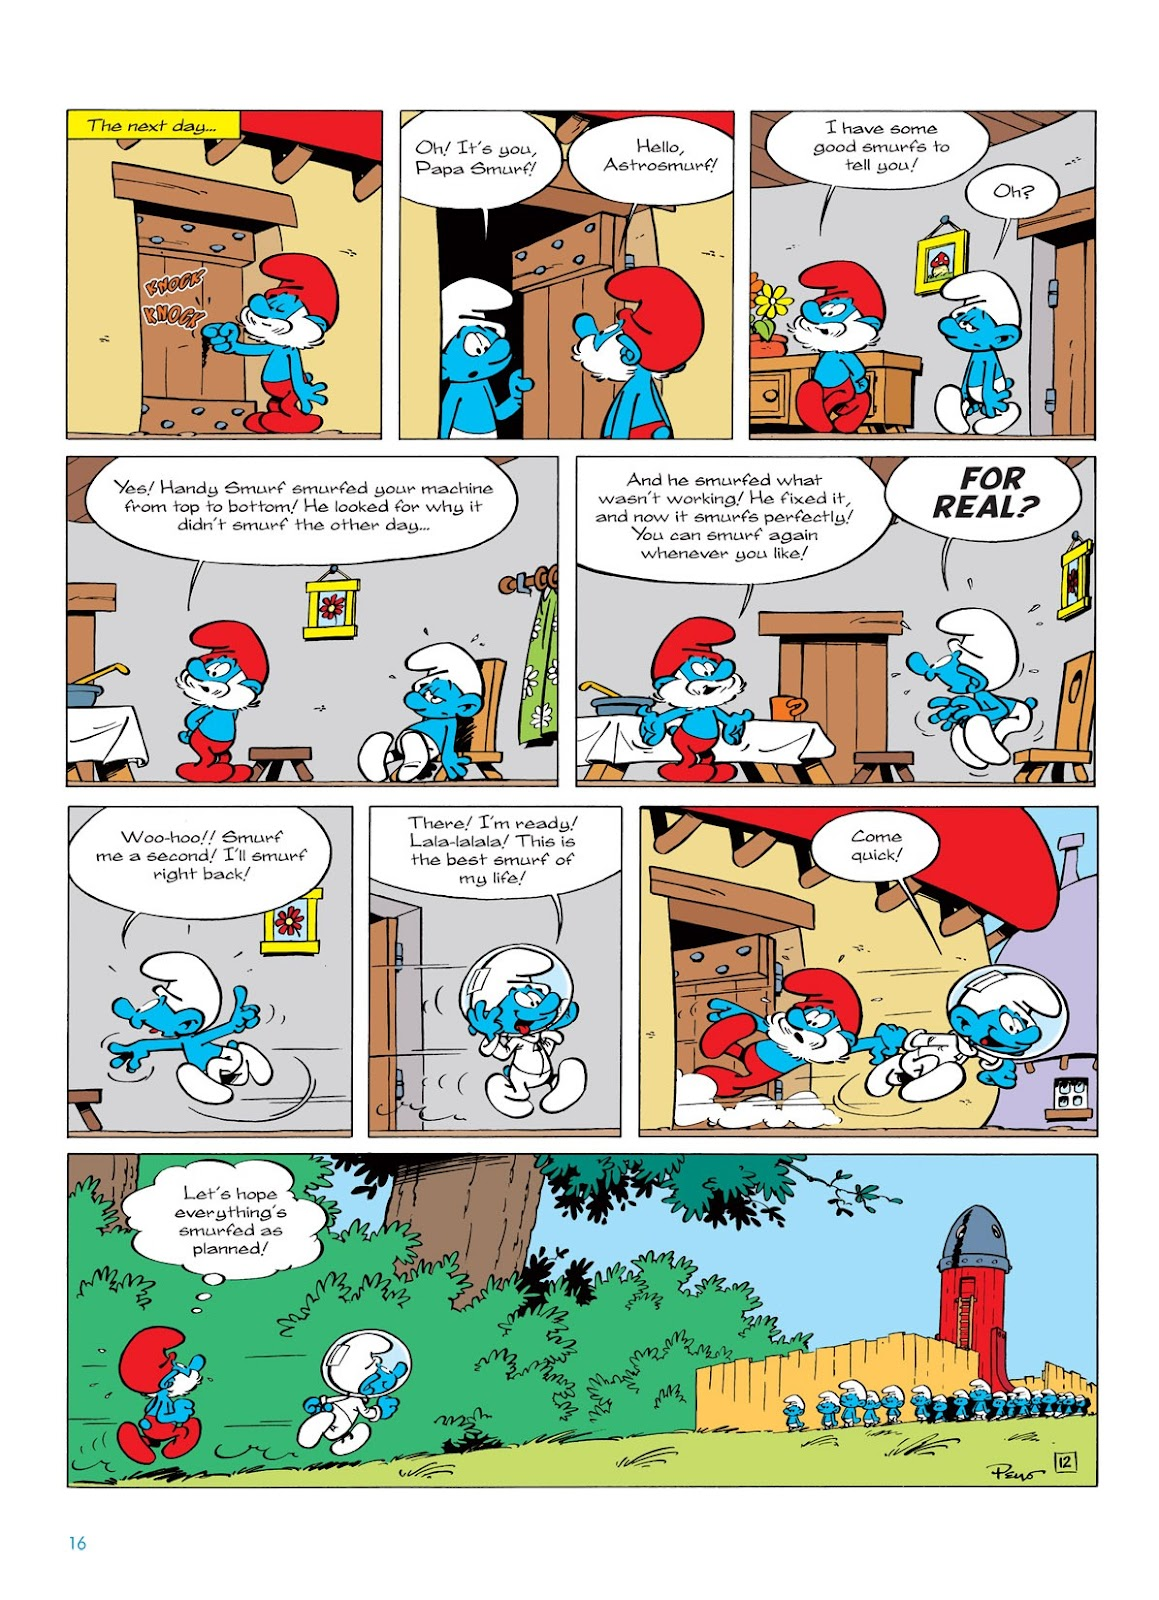 Read online The Smurfs comic -  Issue #7 - 16